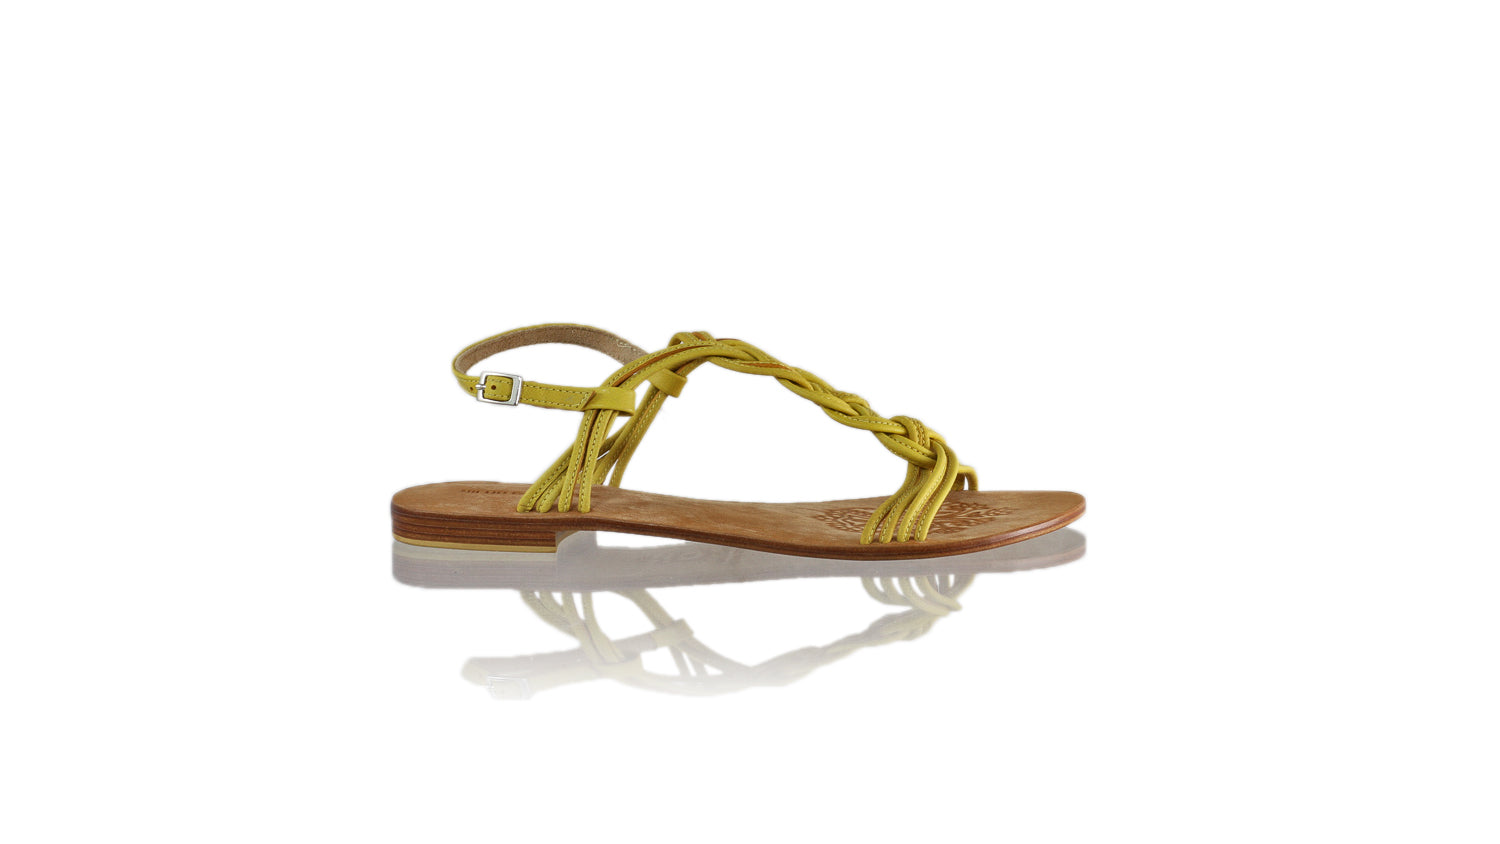 Leather-shoes-Nassera 20mm Flat - Yellow-sandals flat-NILUH DJELANTIK-NILUH DJELANTIK